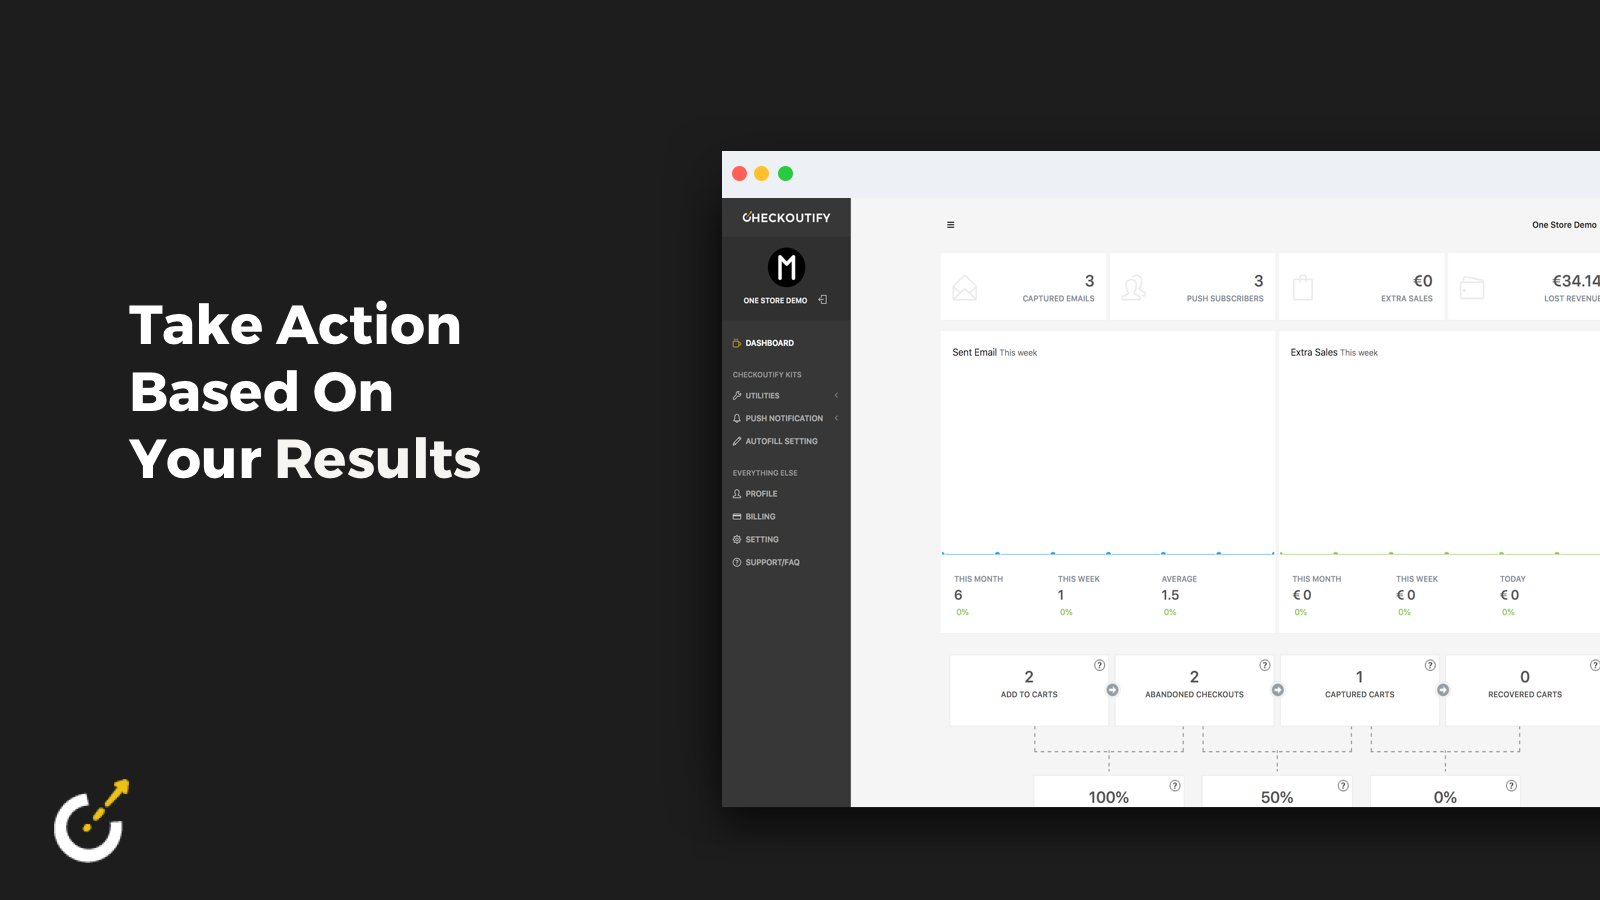 Checkoutify Dashboard with in-depth analytics on abandoned carts